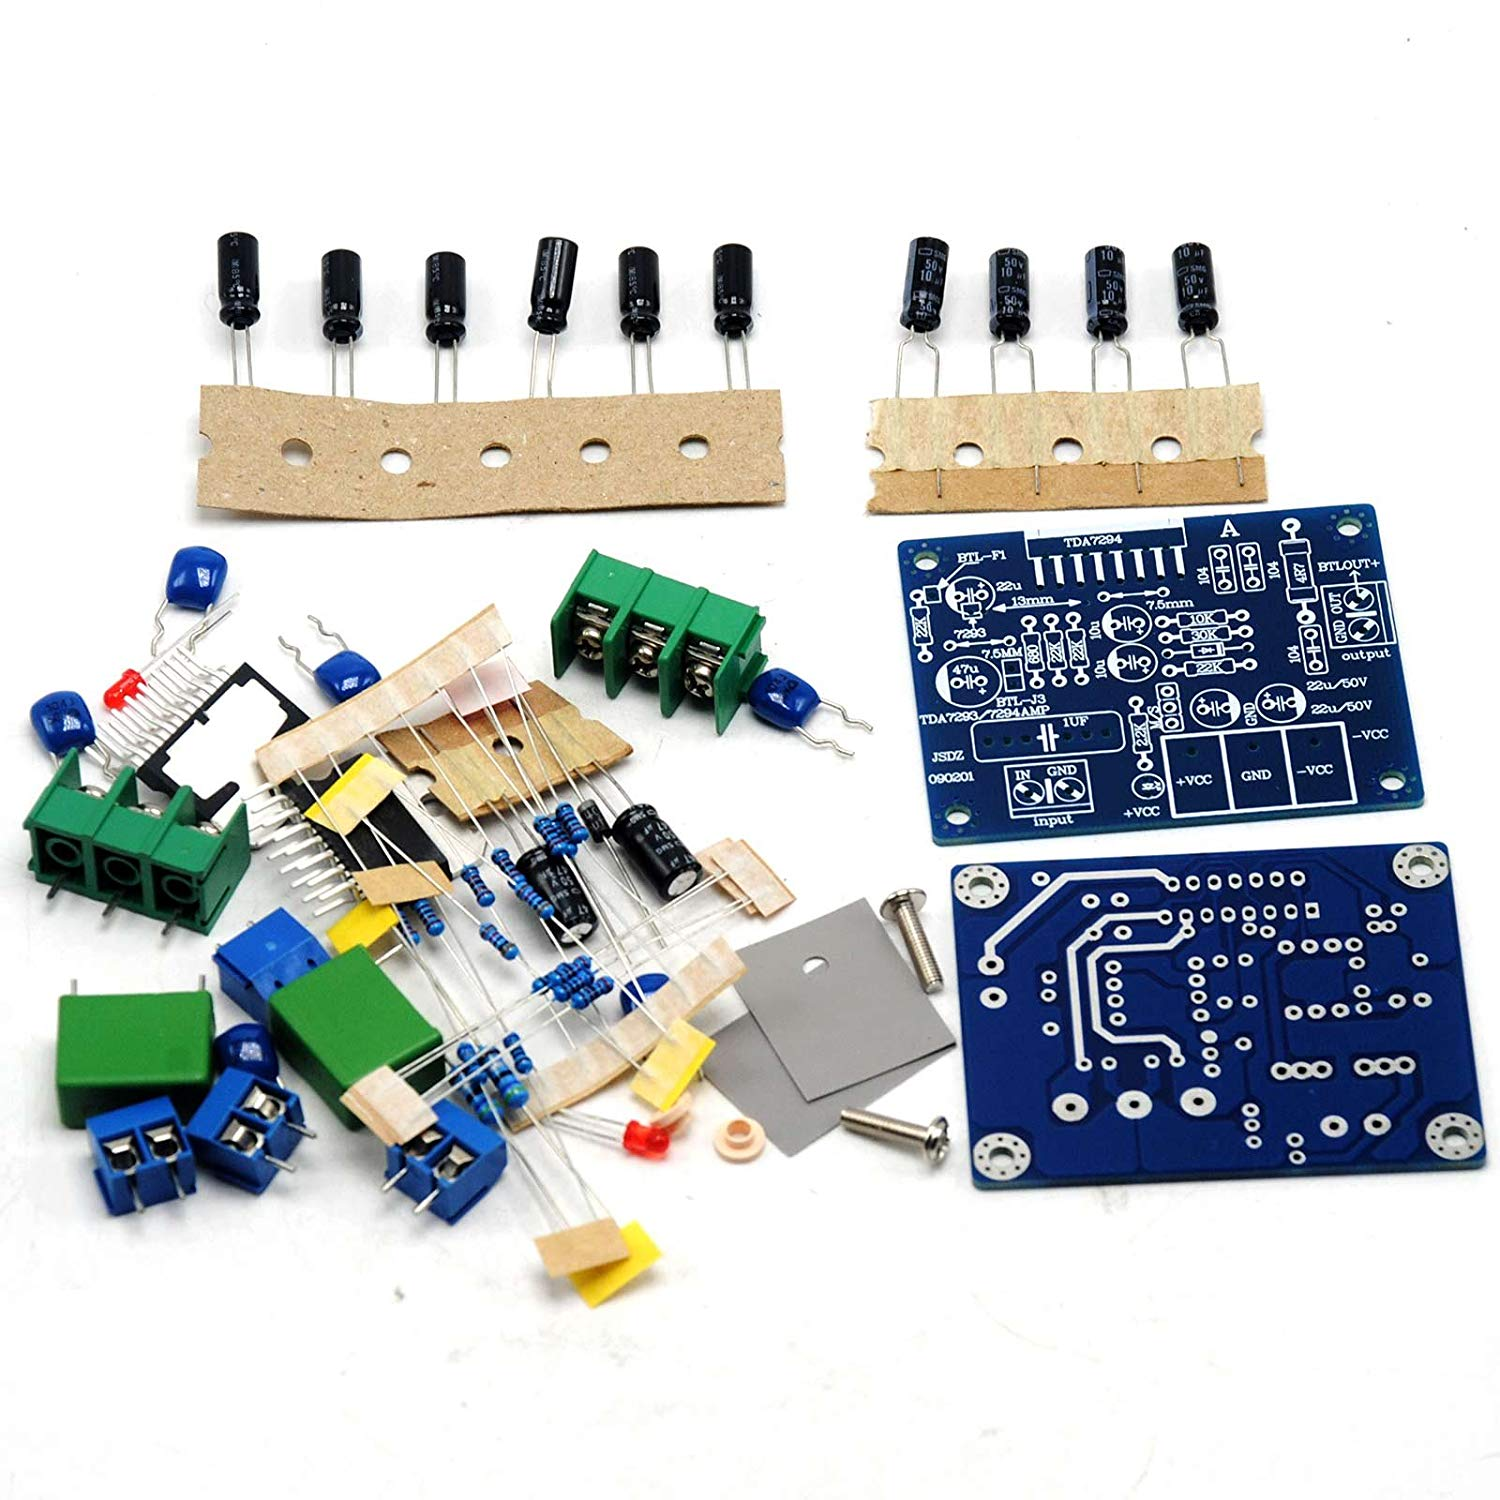 Cheap Tda7294 Datasheet Find Deals On Line At 100w Audiio Amplifier Get Quotations Dual Channels Audio Power Kit For Diy 60w Dc25v